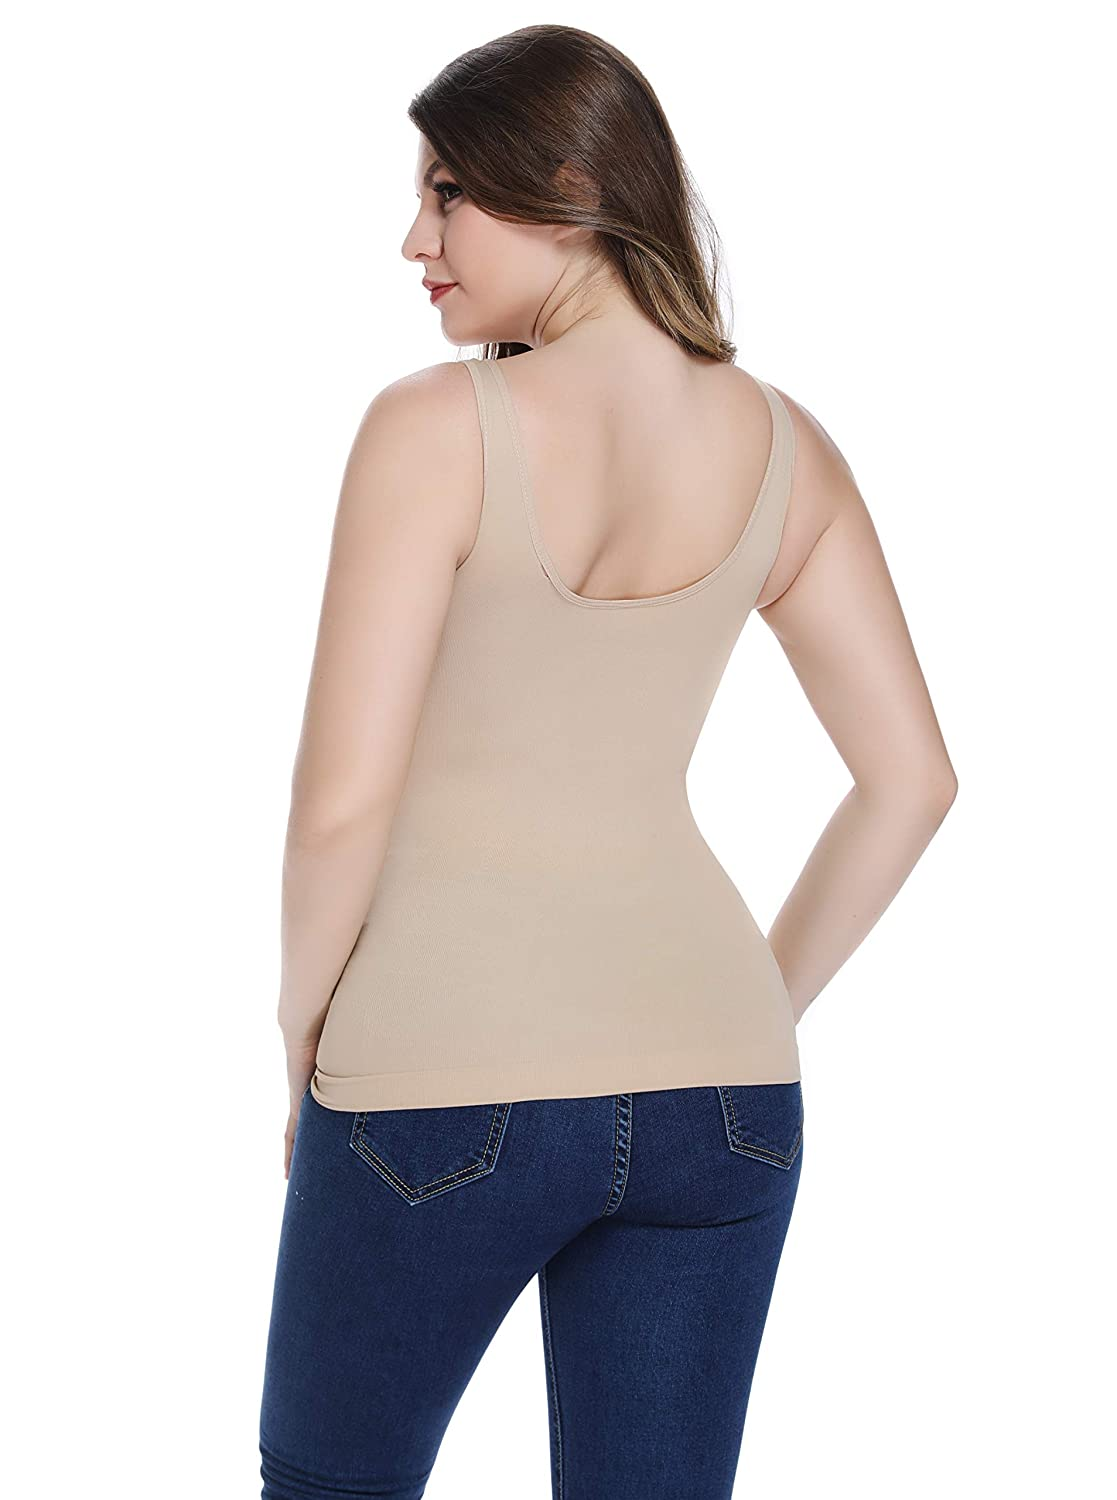 23bb9ef3b1 Joyshaper Vest Tops Women Camisole Wide Strap Tank Top Padded Vest  Sleeveless Vest for Women Compression Tank Tops Seamless Undershirt Shaping  Vest  ...